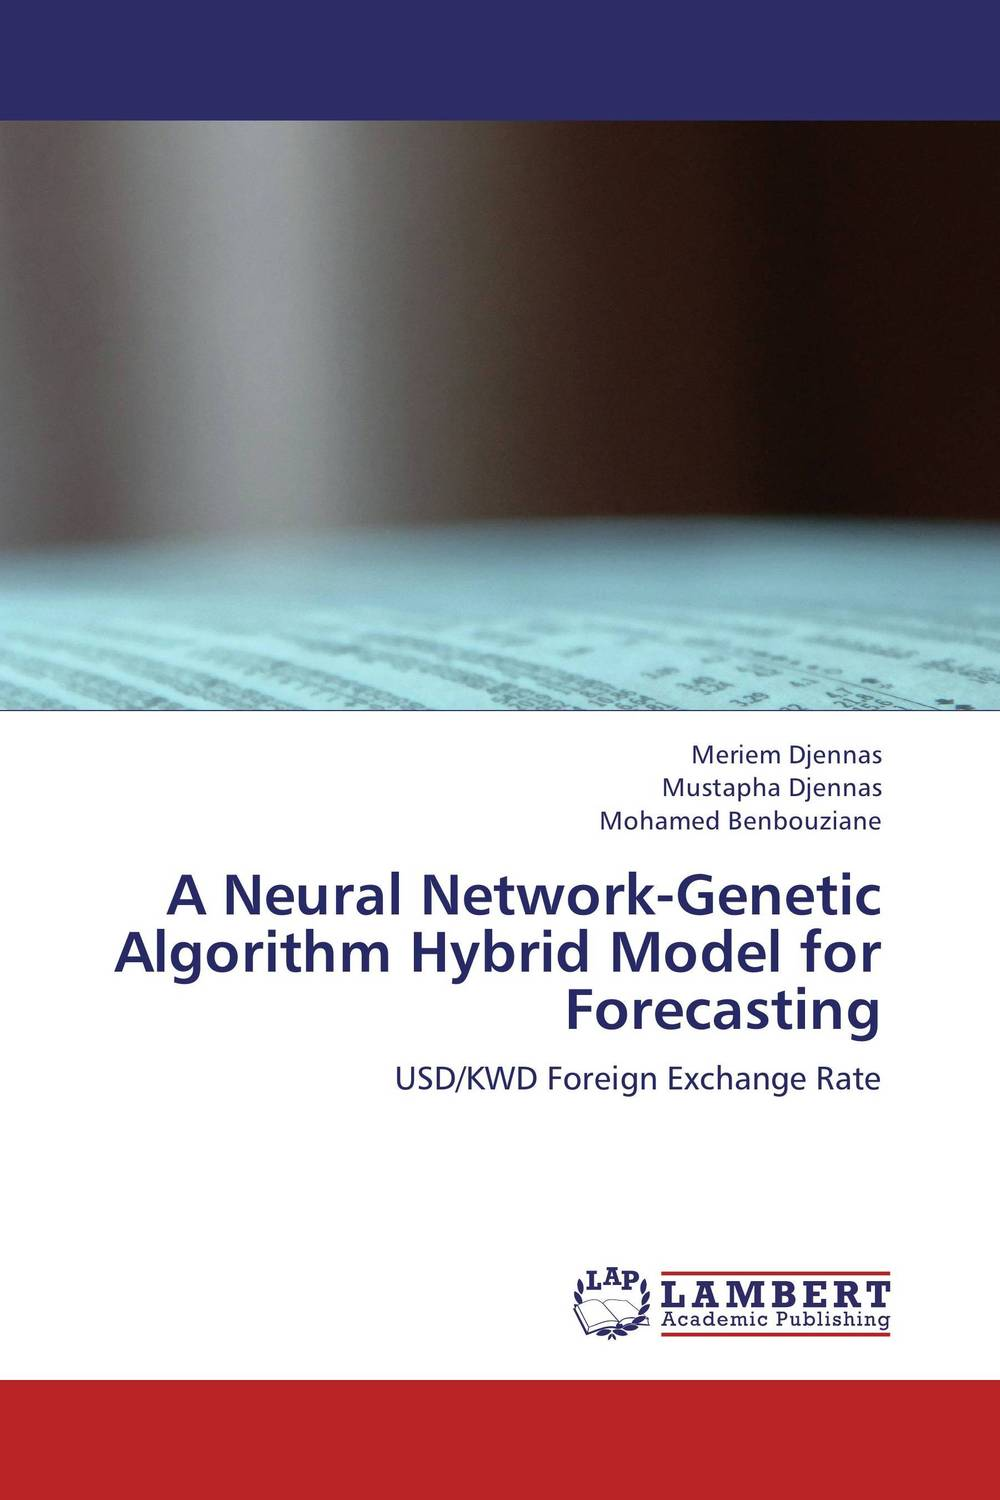 A Neural Network-Genetic Algorithm Hybrid Model for Forecasting lh officer an econometric model of canada under the fluctuating exchange rate